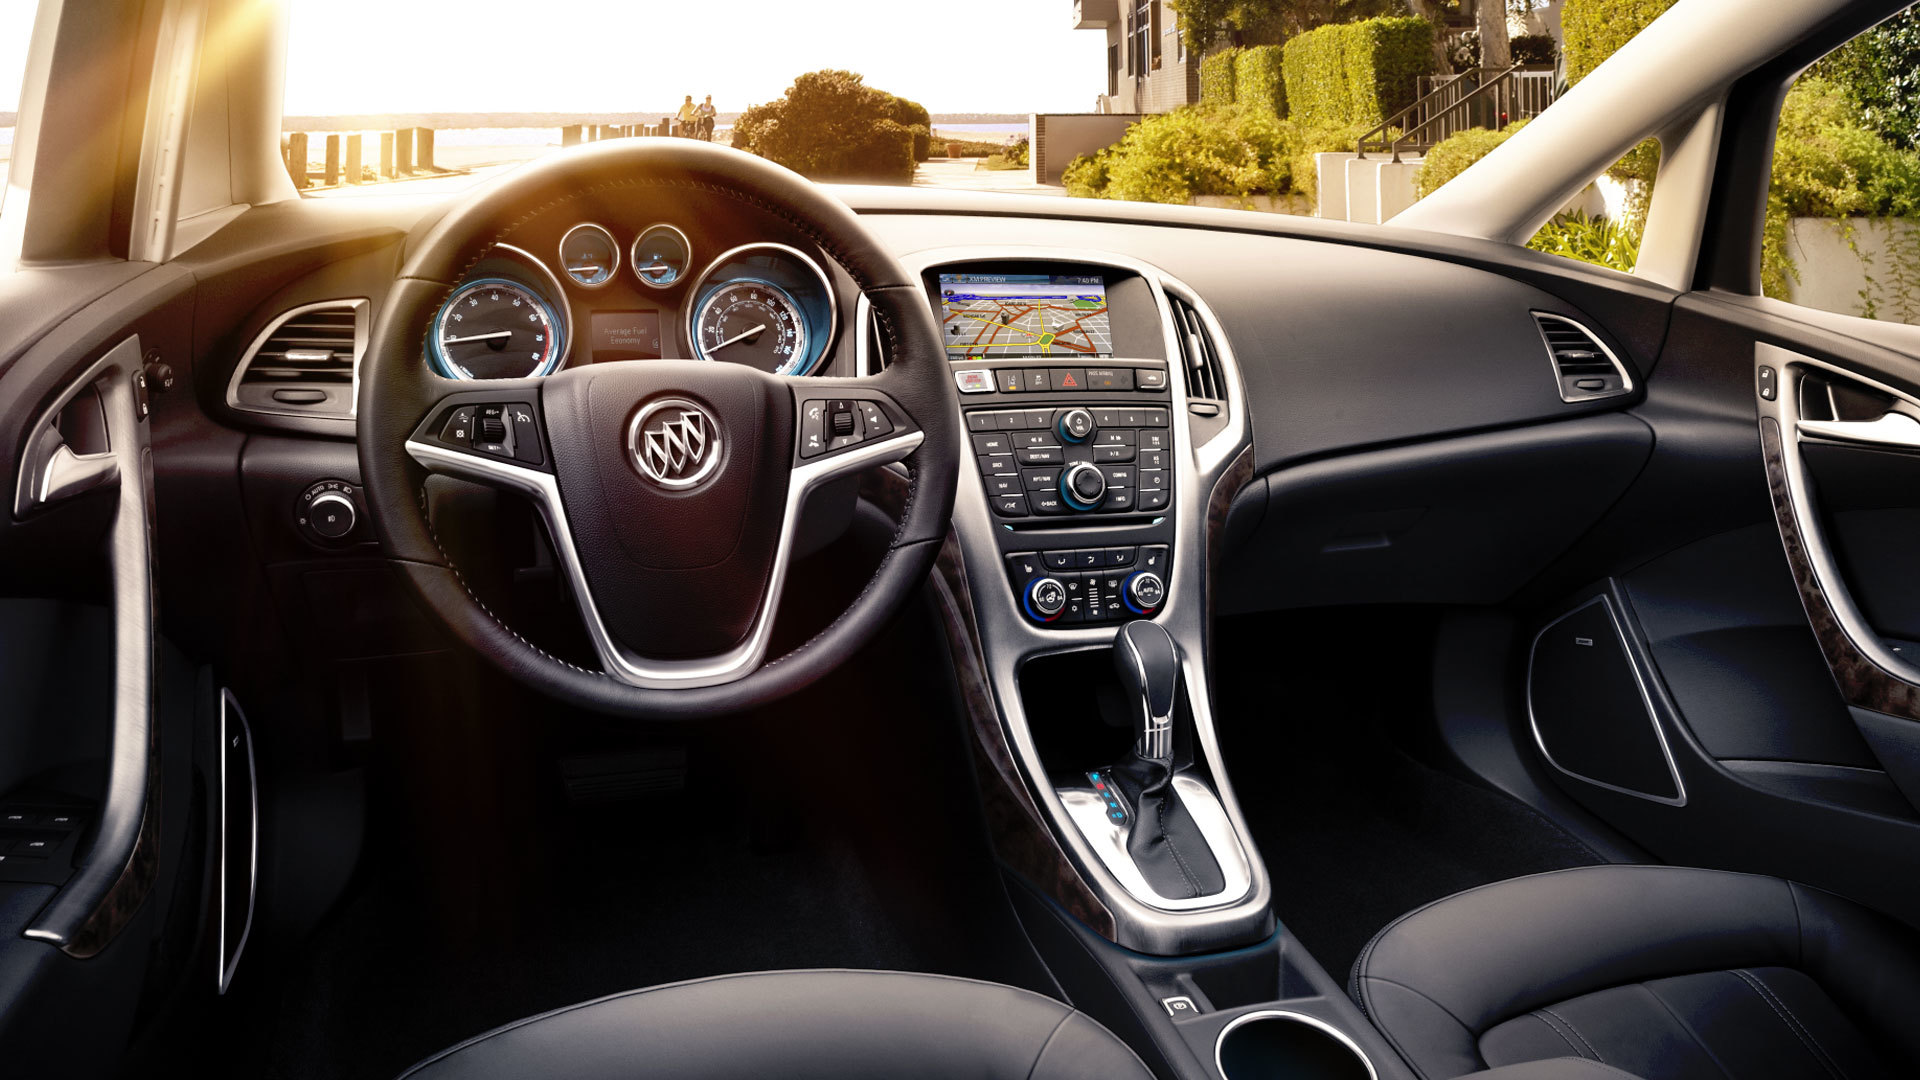 New Buick Verano Lincolnwood Chicago Buick Dealer - Chicago buick dealer